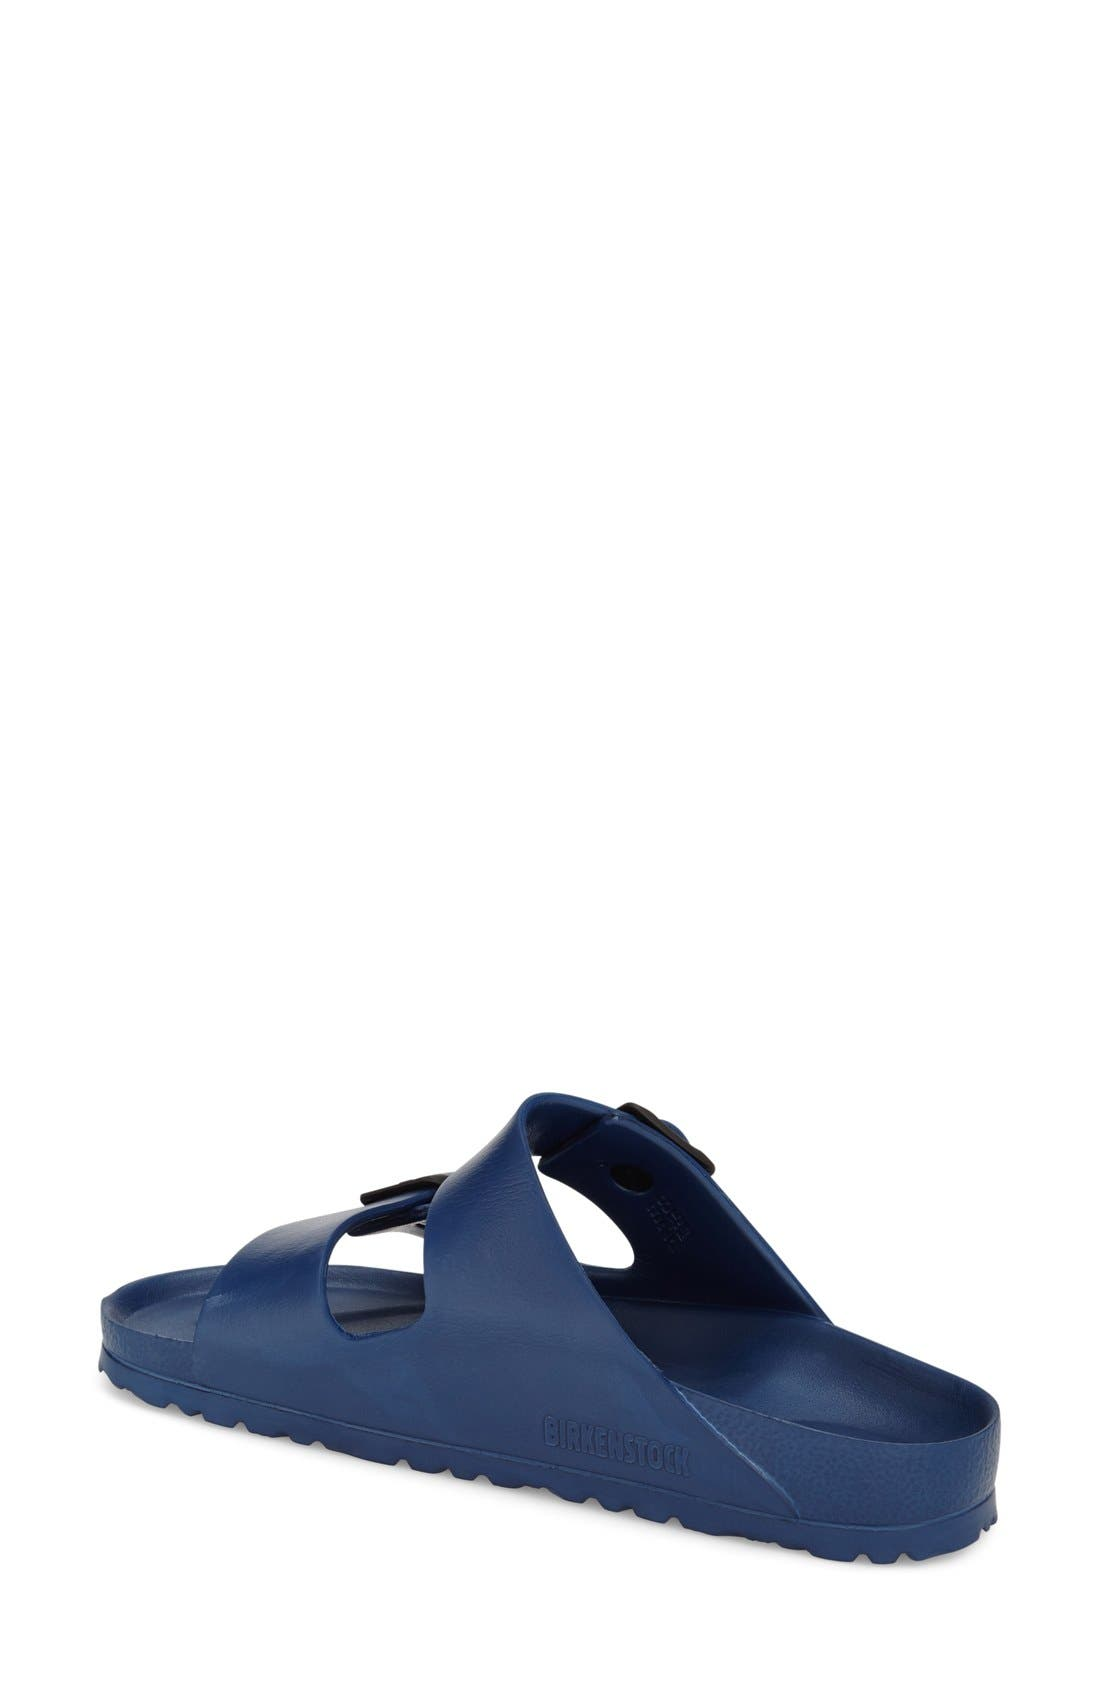 Essentials - Arizona Slide Sandal,                             Alternate thumbnail 5, color,                             NAVY EVA